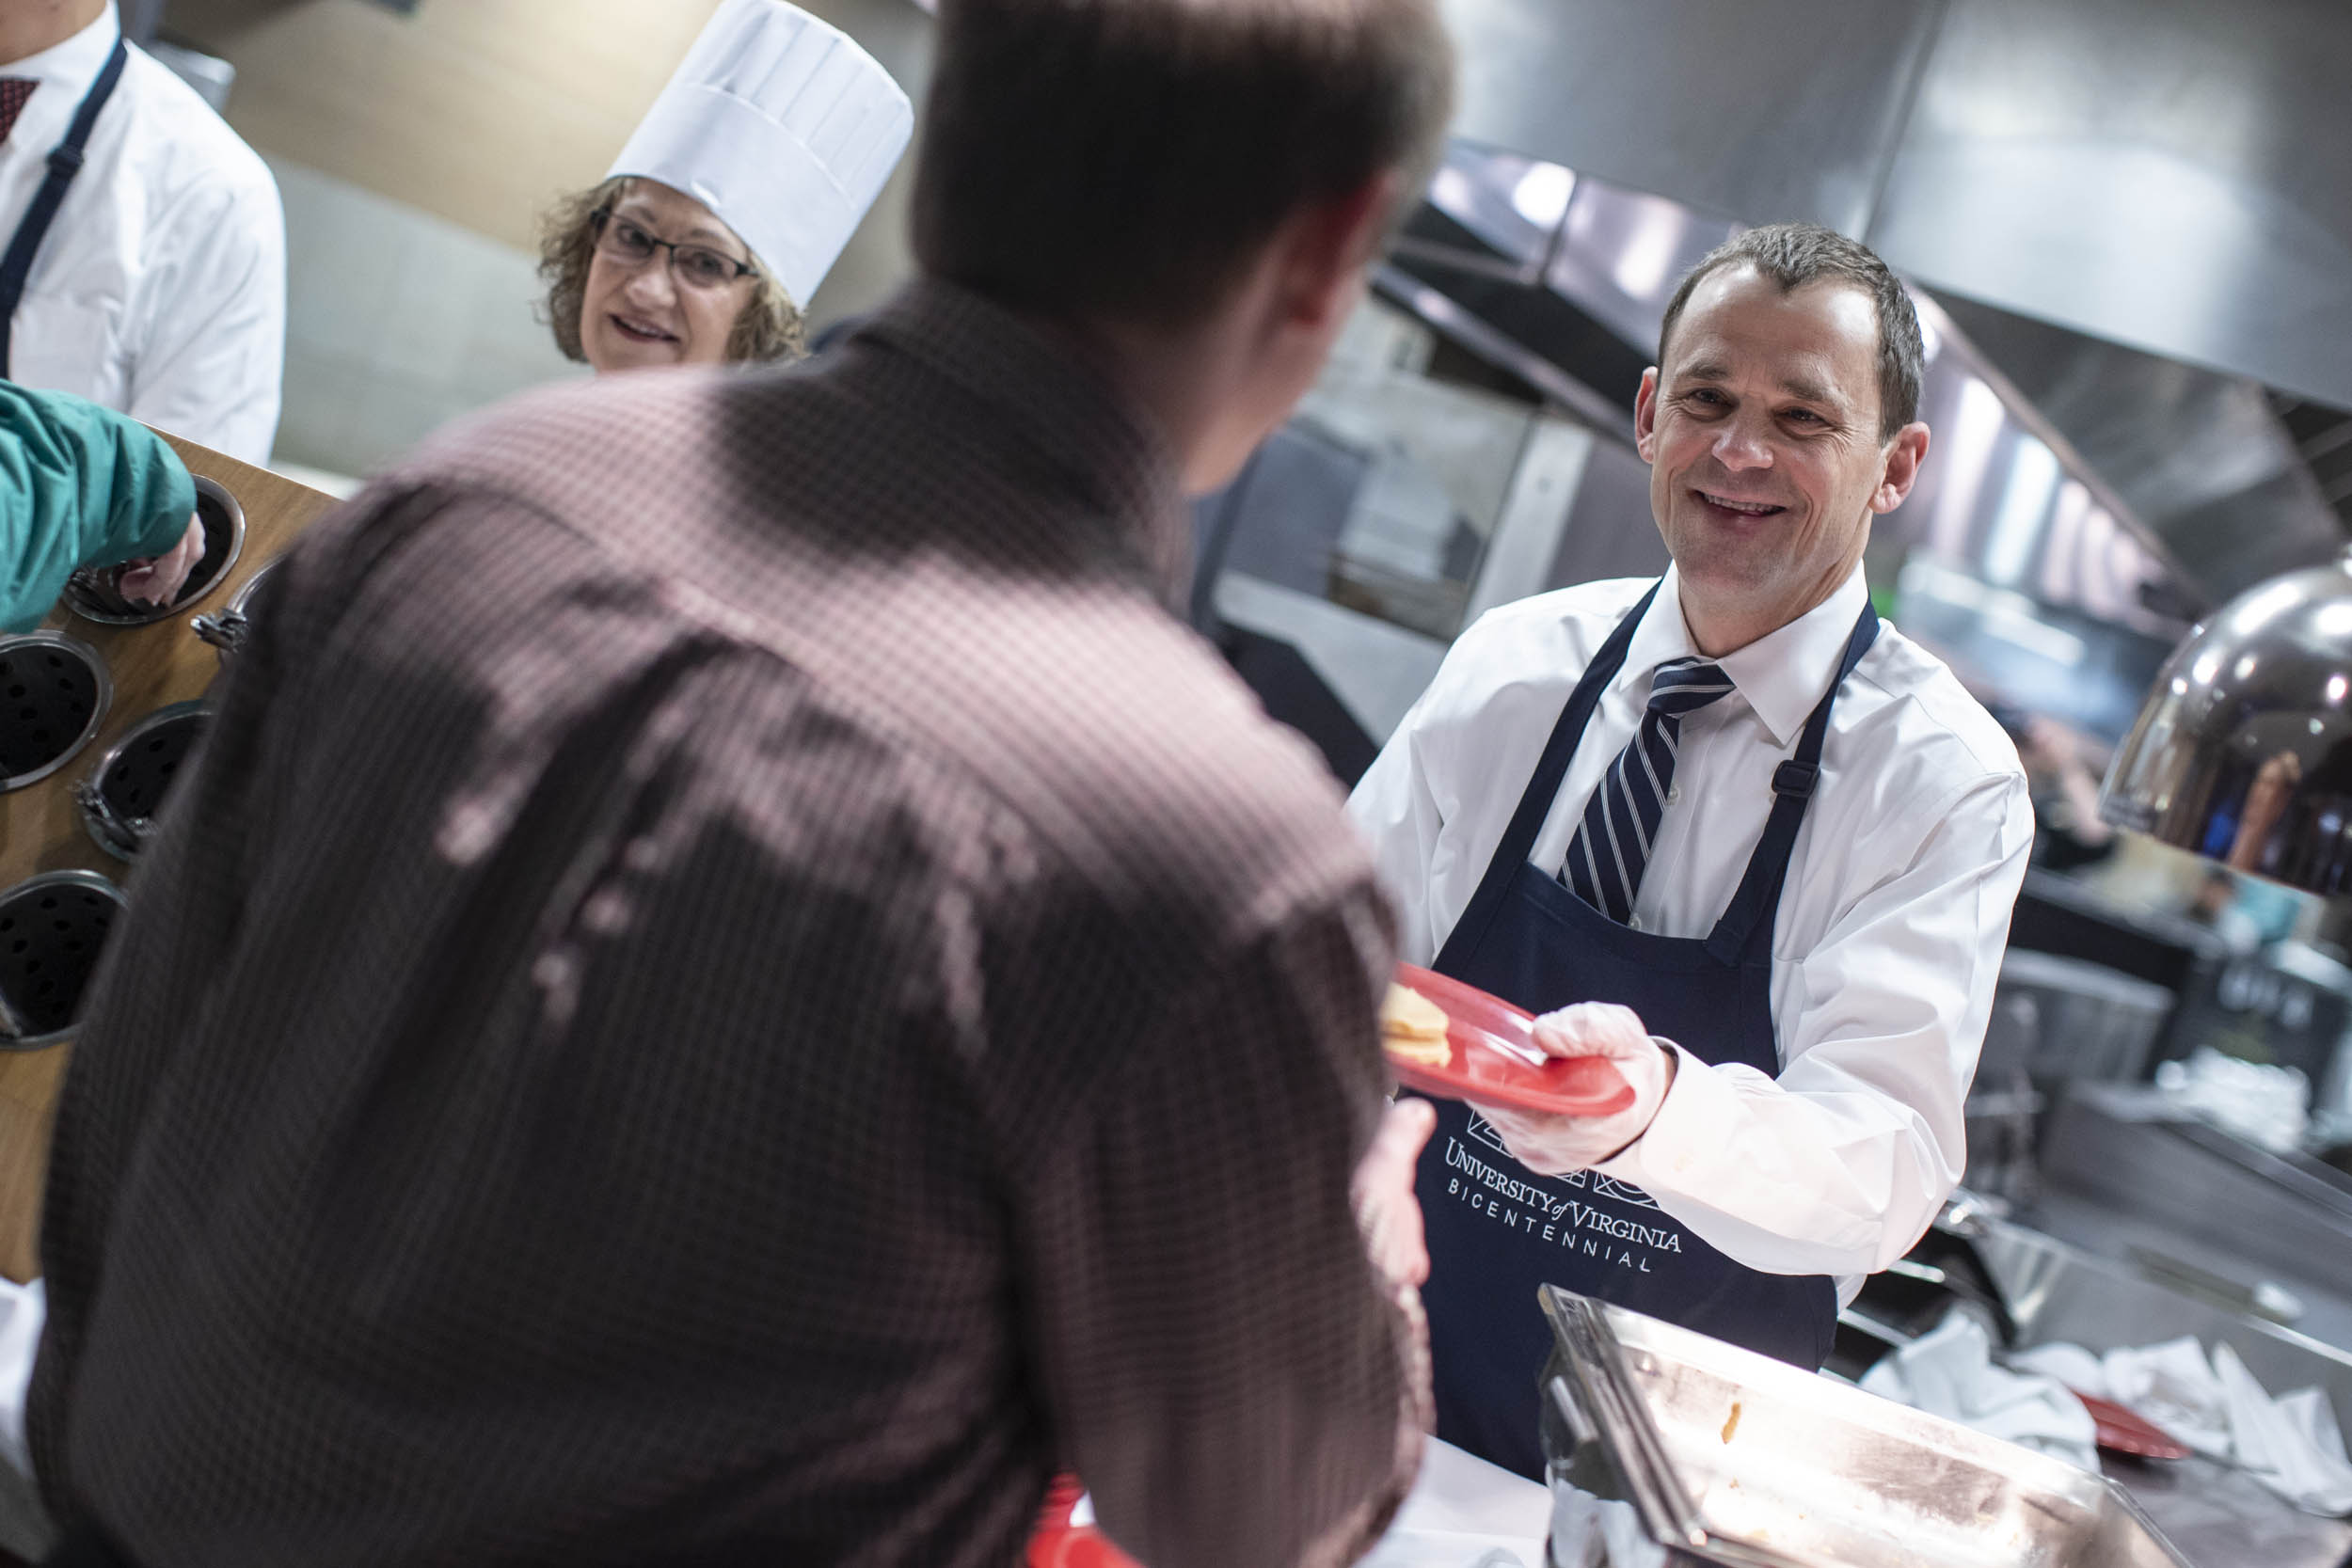 President Jim Ryan donned an apron to serve employees at the annual staff appreciation breakfast Tuesday morning.